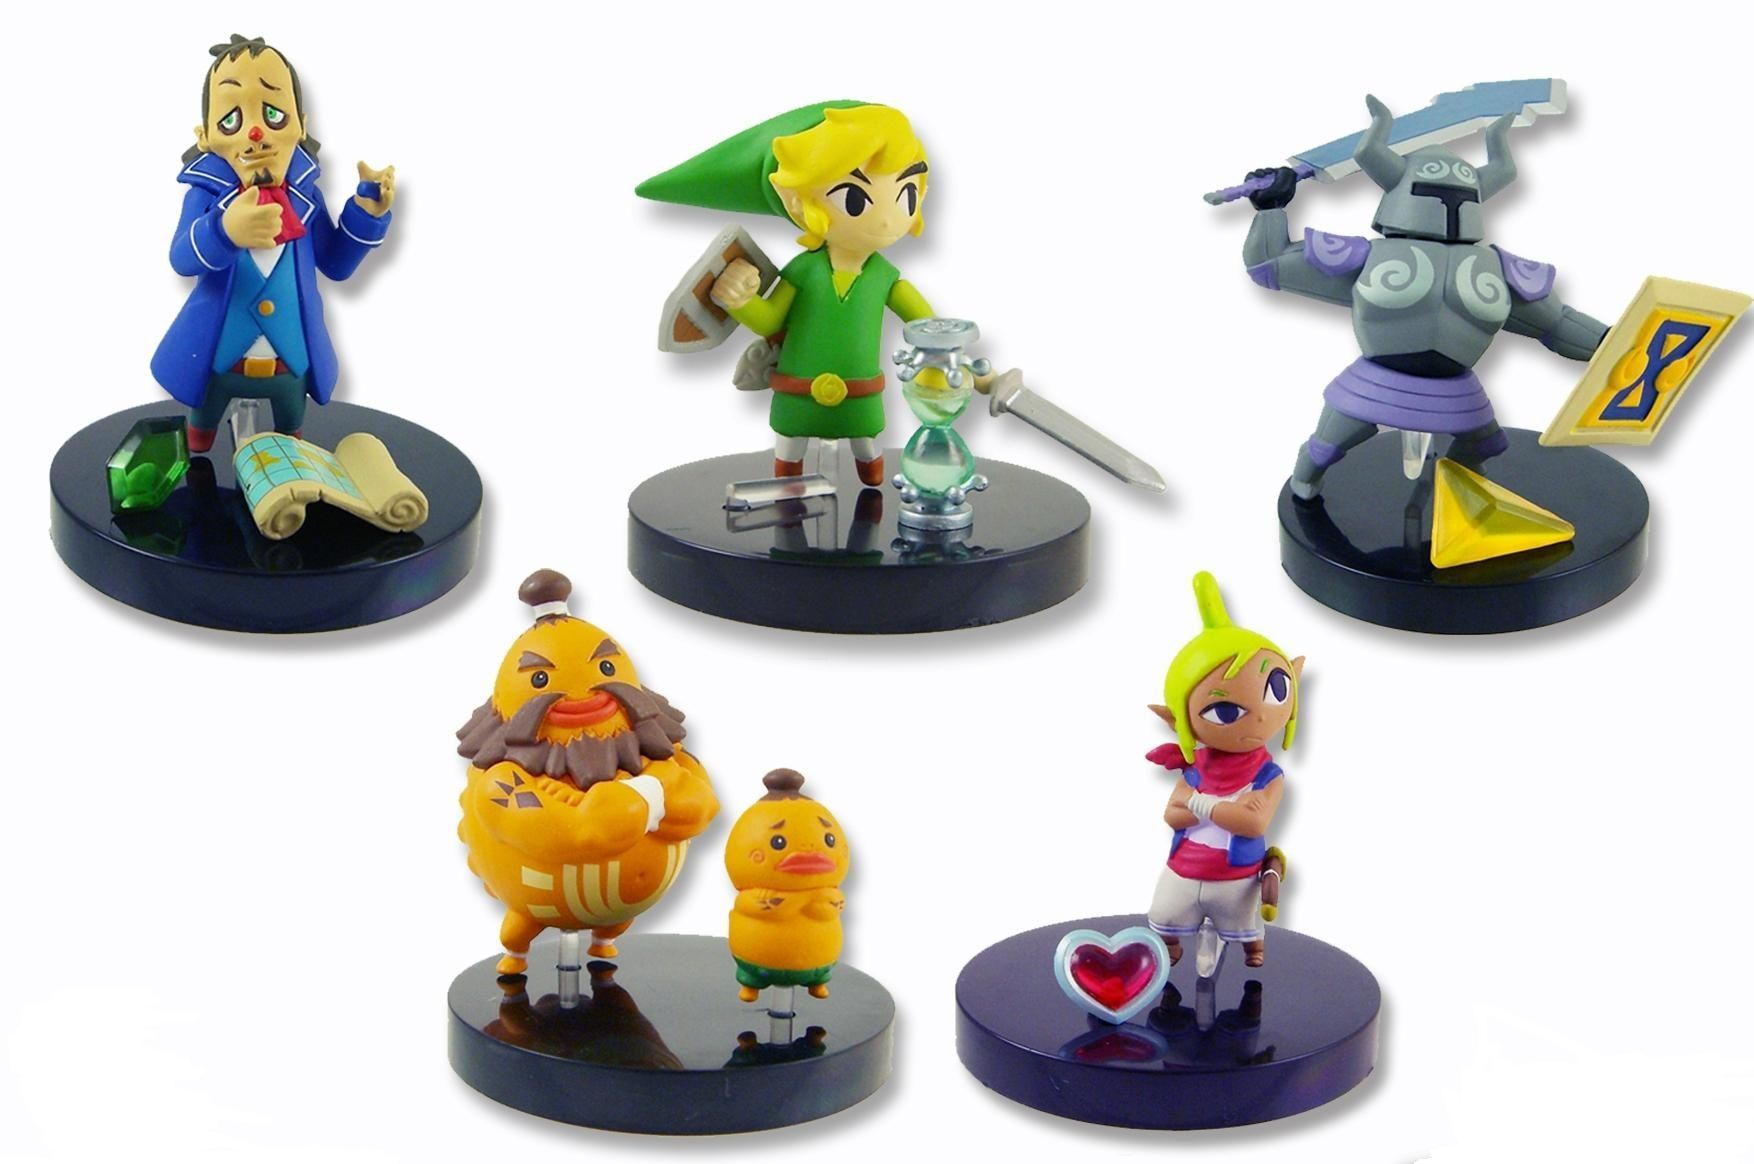 Zelda Phantom Hourglass buildable figures � pack of 3